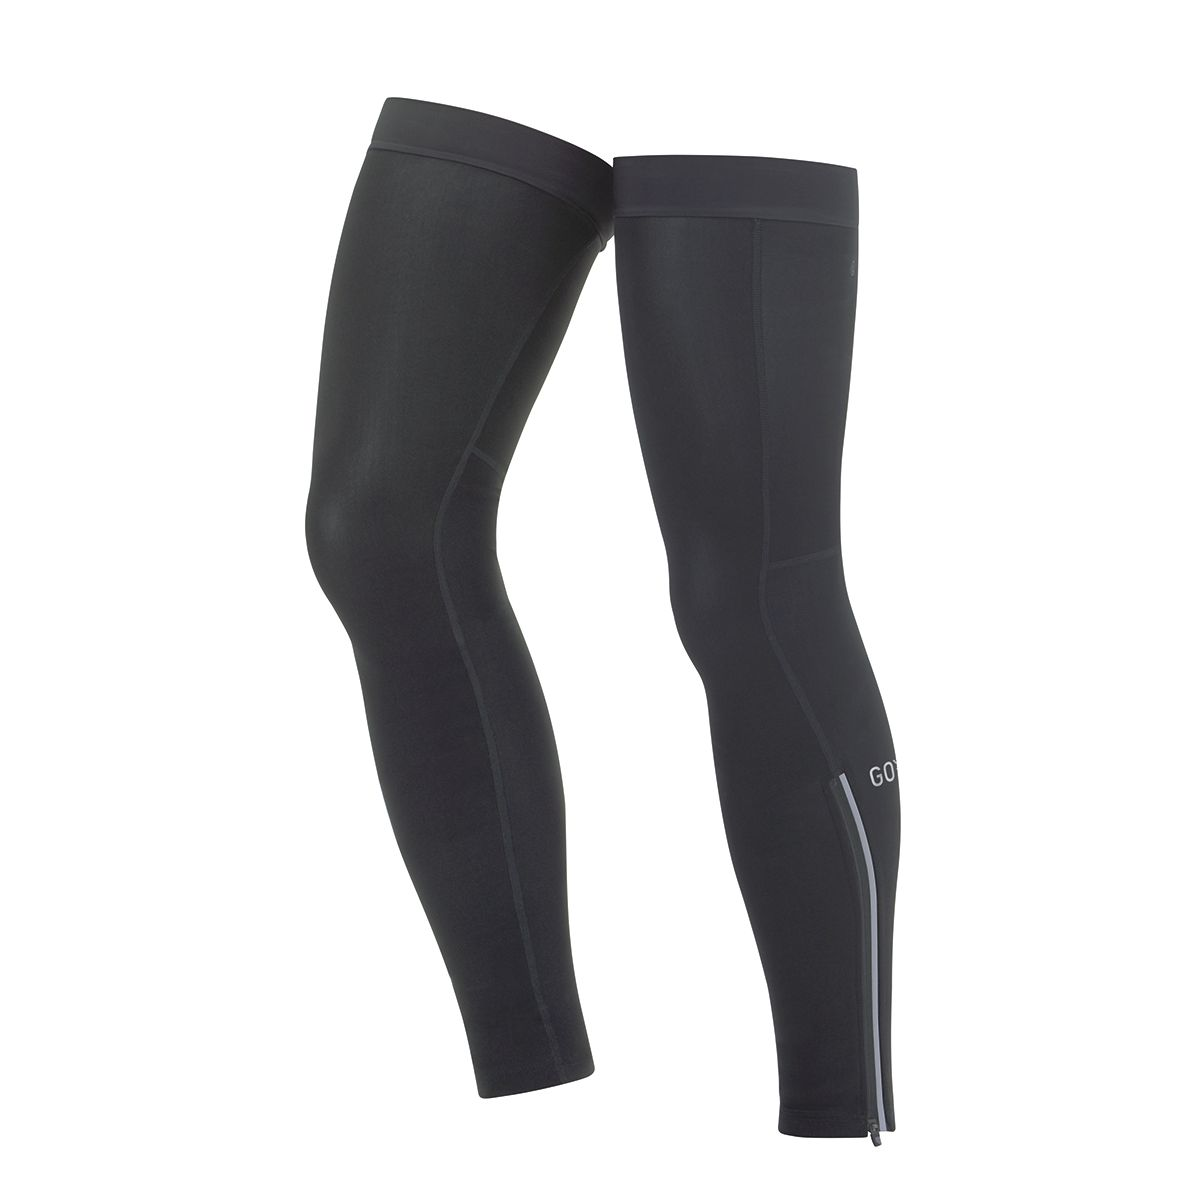 C3 THERMO LEG WARMERS